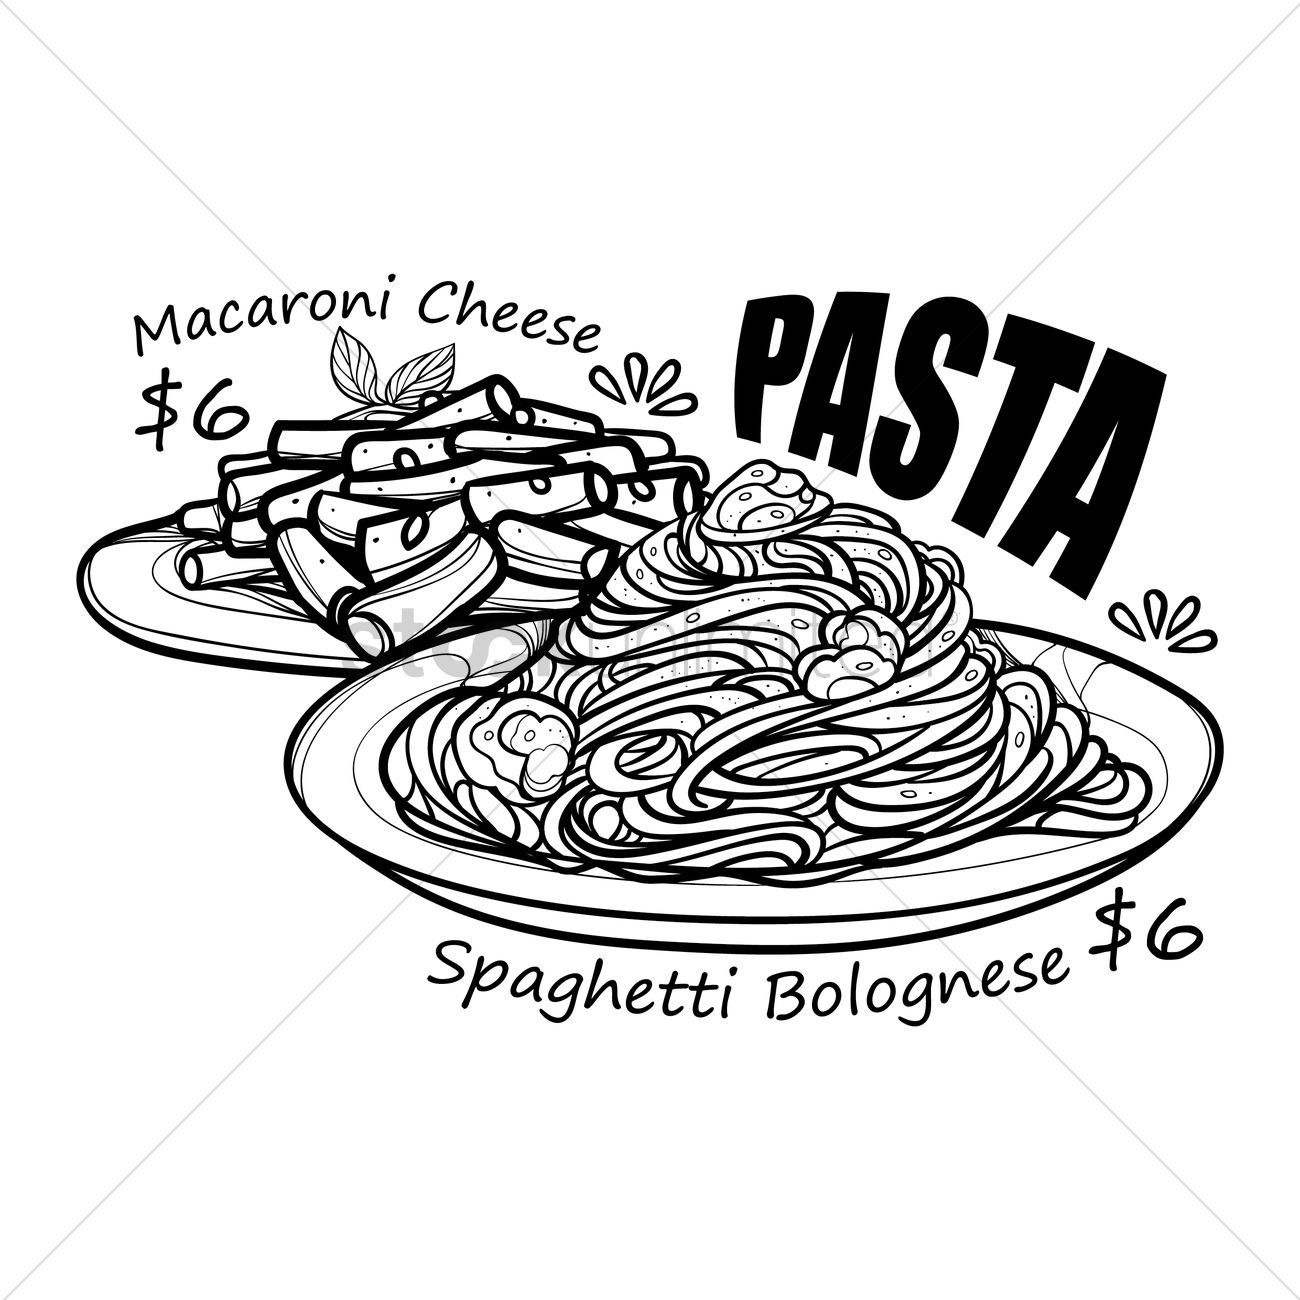 Pasta Menu Title With Price Vector Image